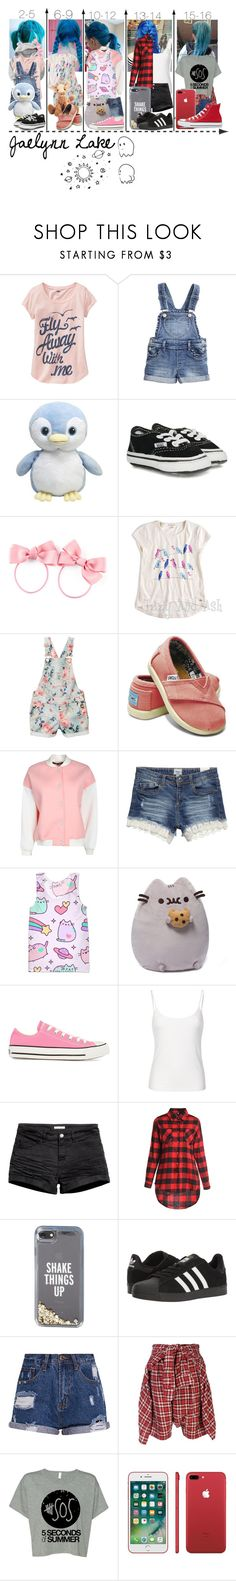 """Blue haired miracle"" by frootloop16 ❤ liked on Polyvore featuring Gap, Old Navy, Vans, H&M, Appaman, TOMS, Tarah, Pusheen, Converse and Kate Spade"